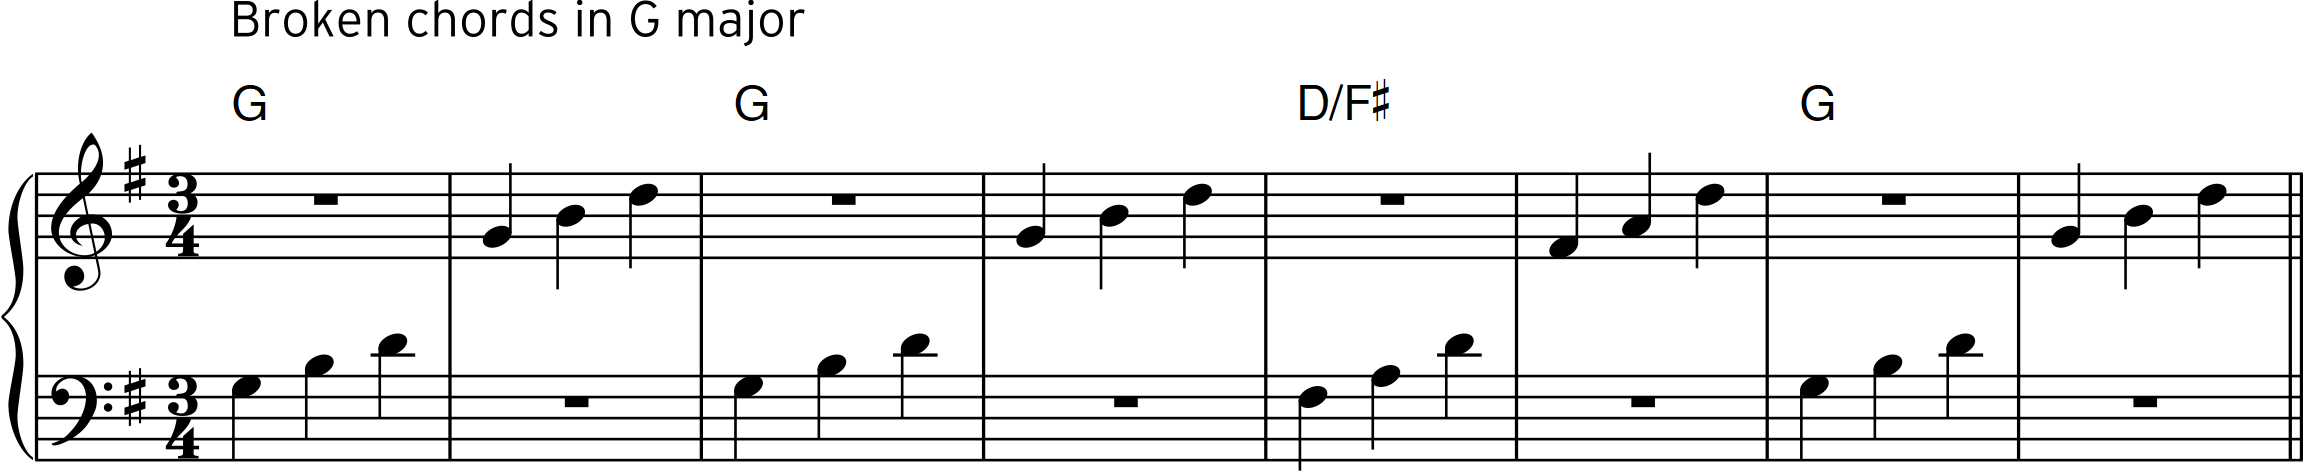 Fig 4 part 3 (4 bar sequence in G major, broken chords) NEW